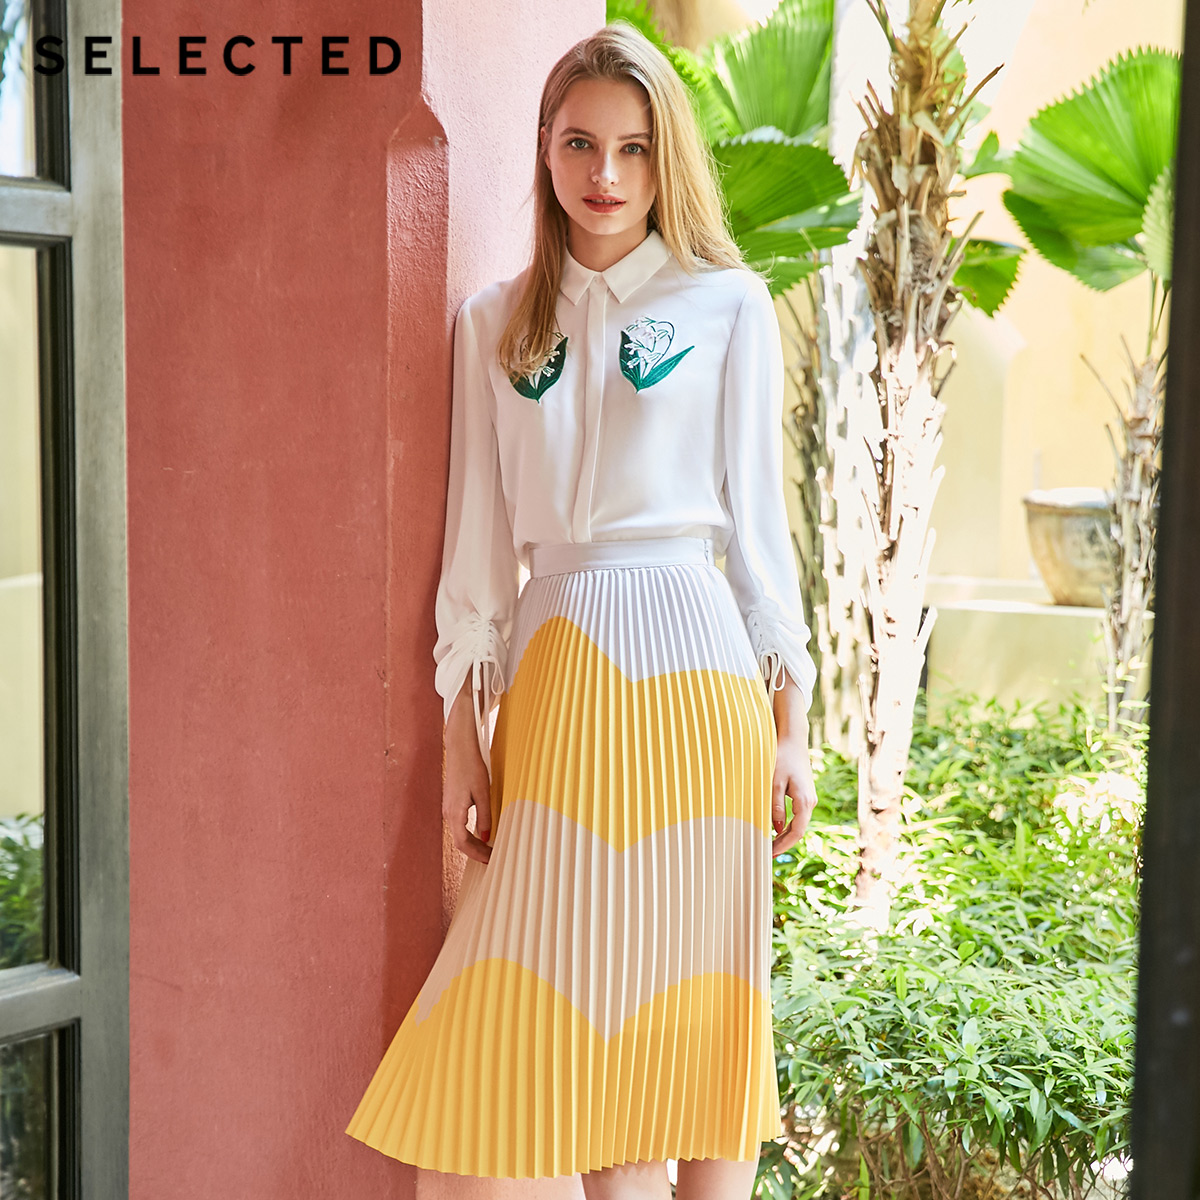 SELECTED Summer Assorted Colors Pleated Midi Dress S 41924C514